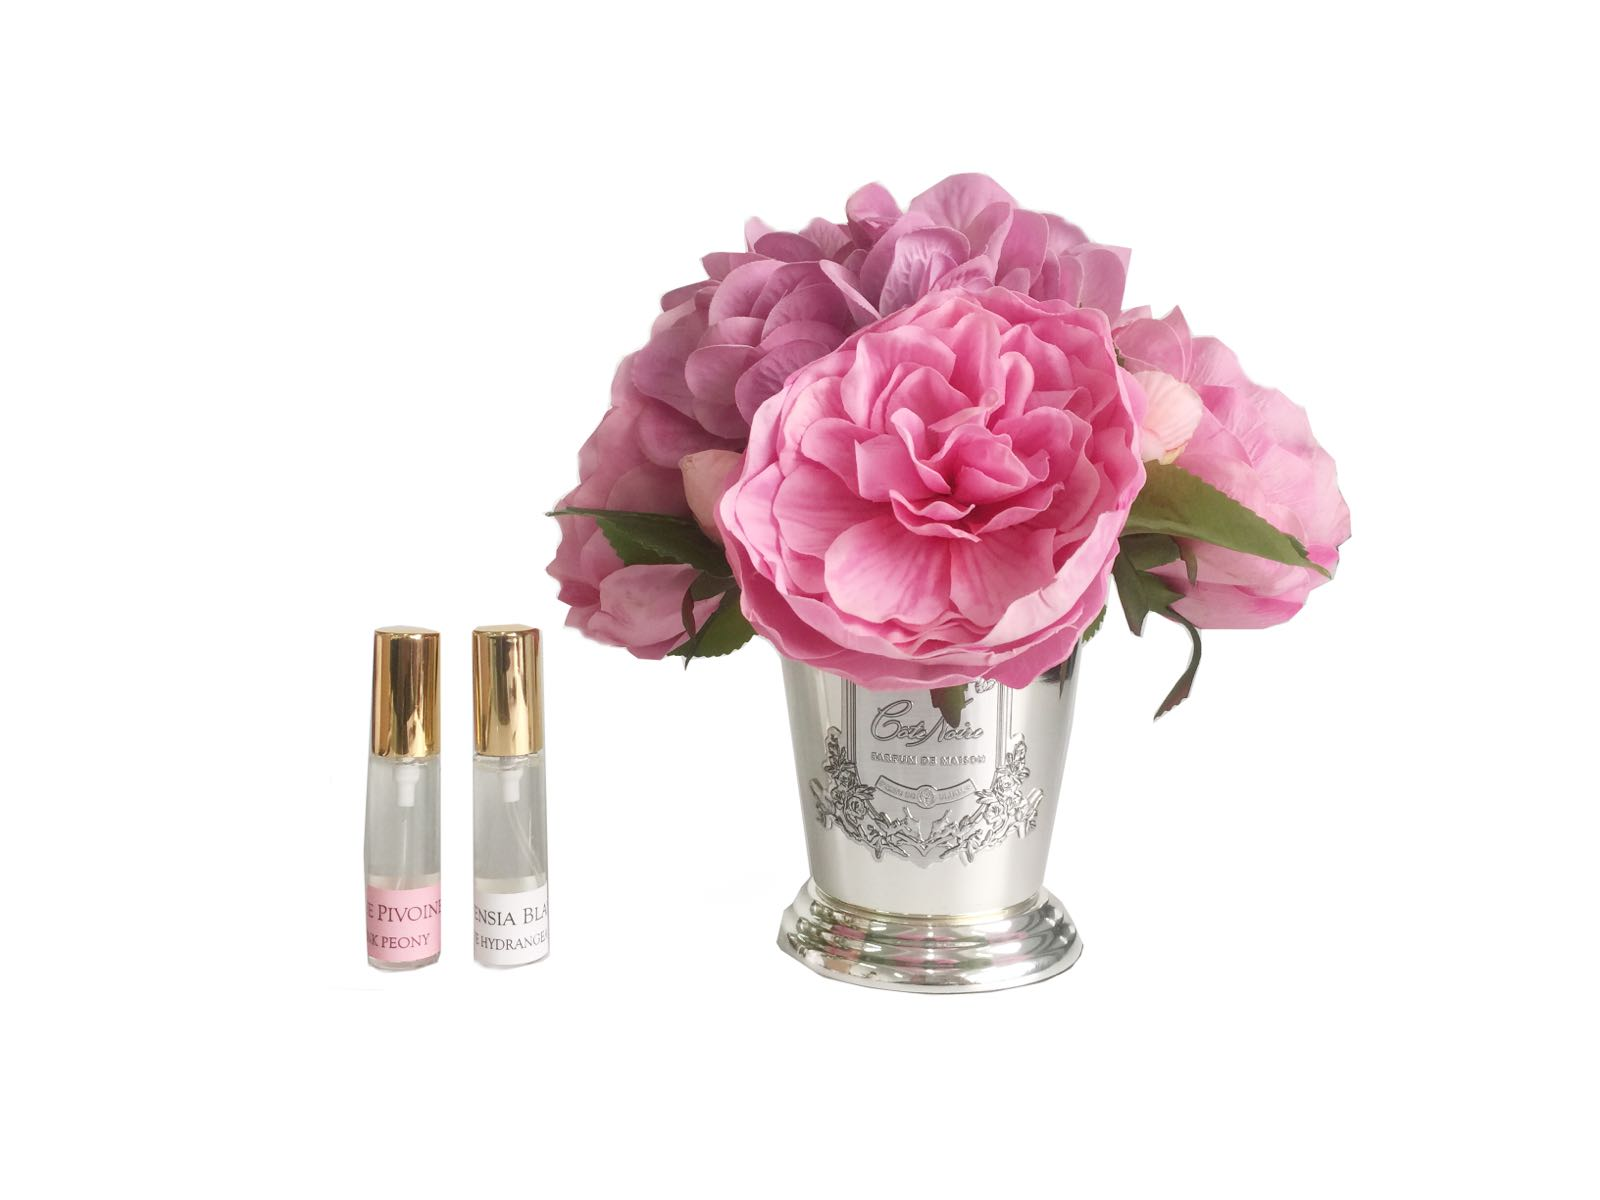 Cote noire Peony Bouquet in Pink